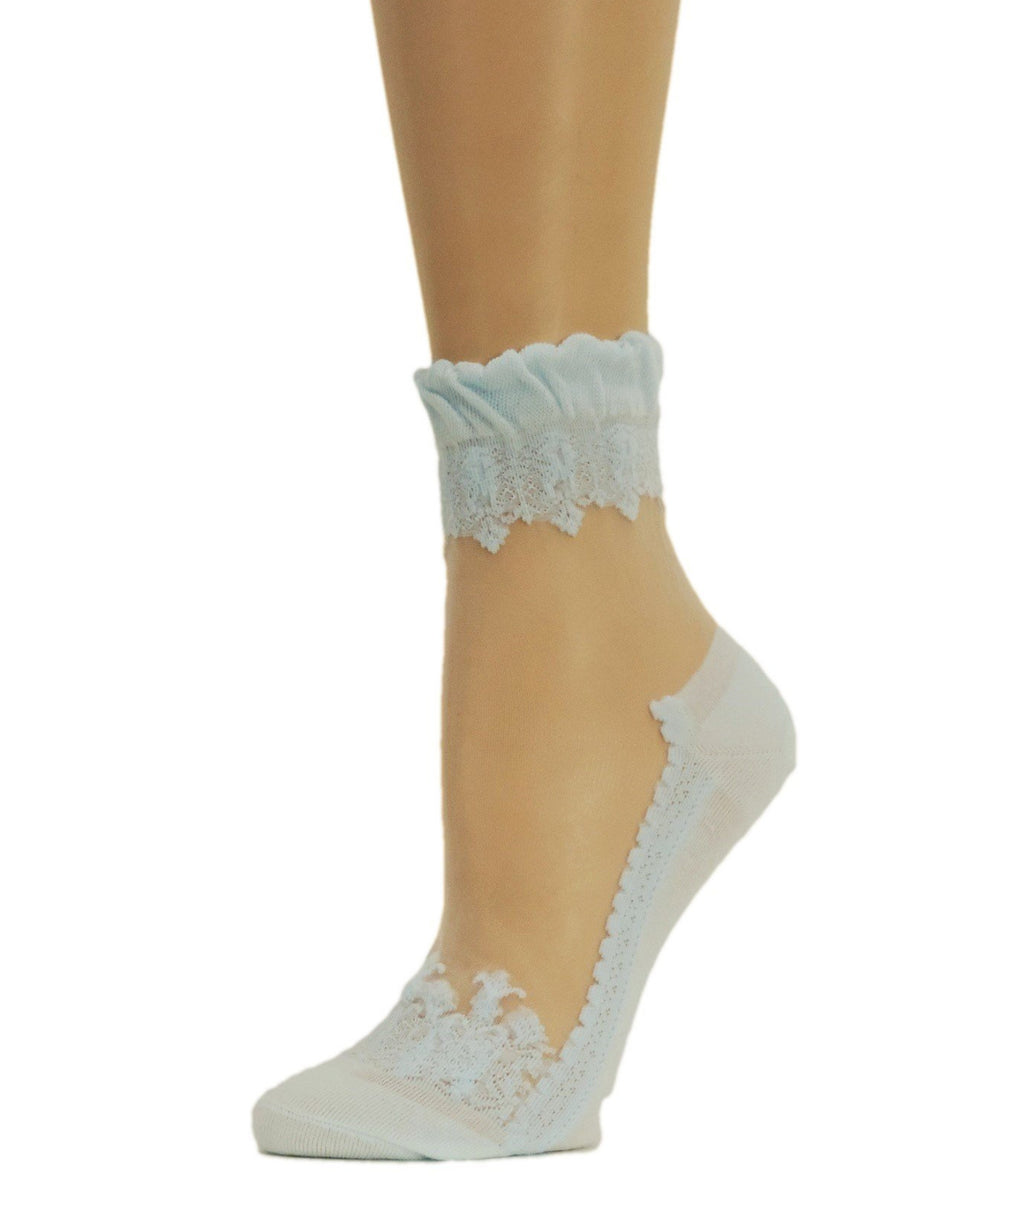 Stylish Sky-blue Sheer Socks - Global Trendz Fashion®